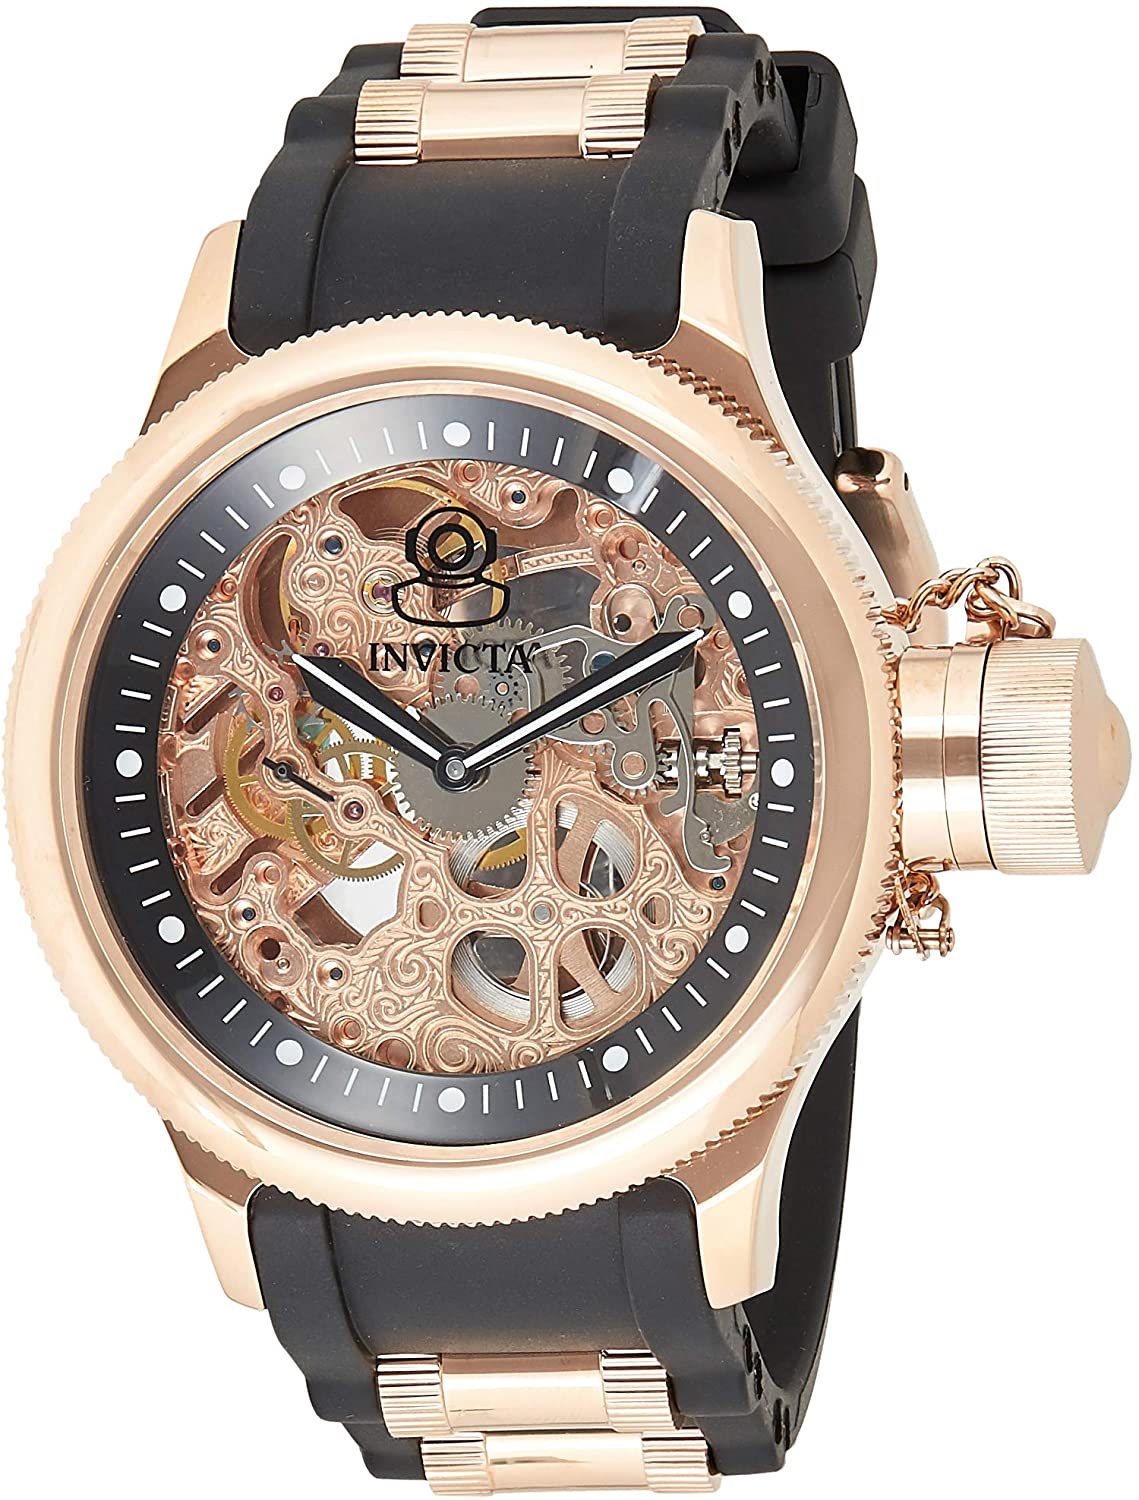 Invicta 1090 Men's Rose Gold Stainless Steel Watch - Sears Marketplace